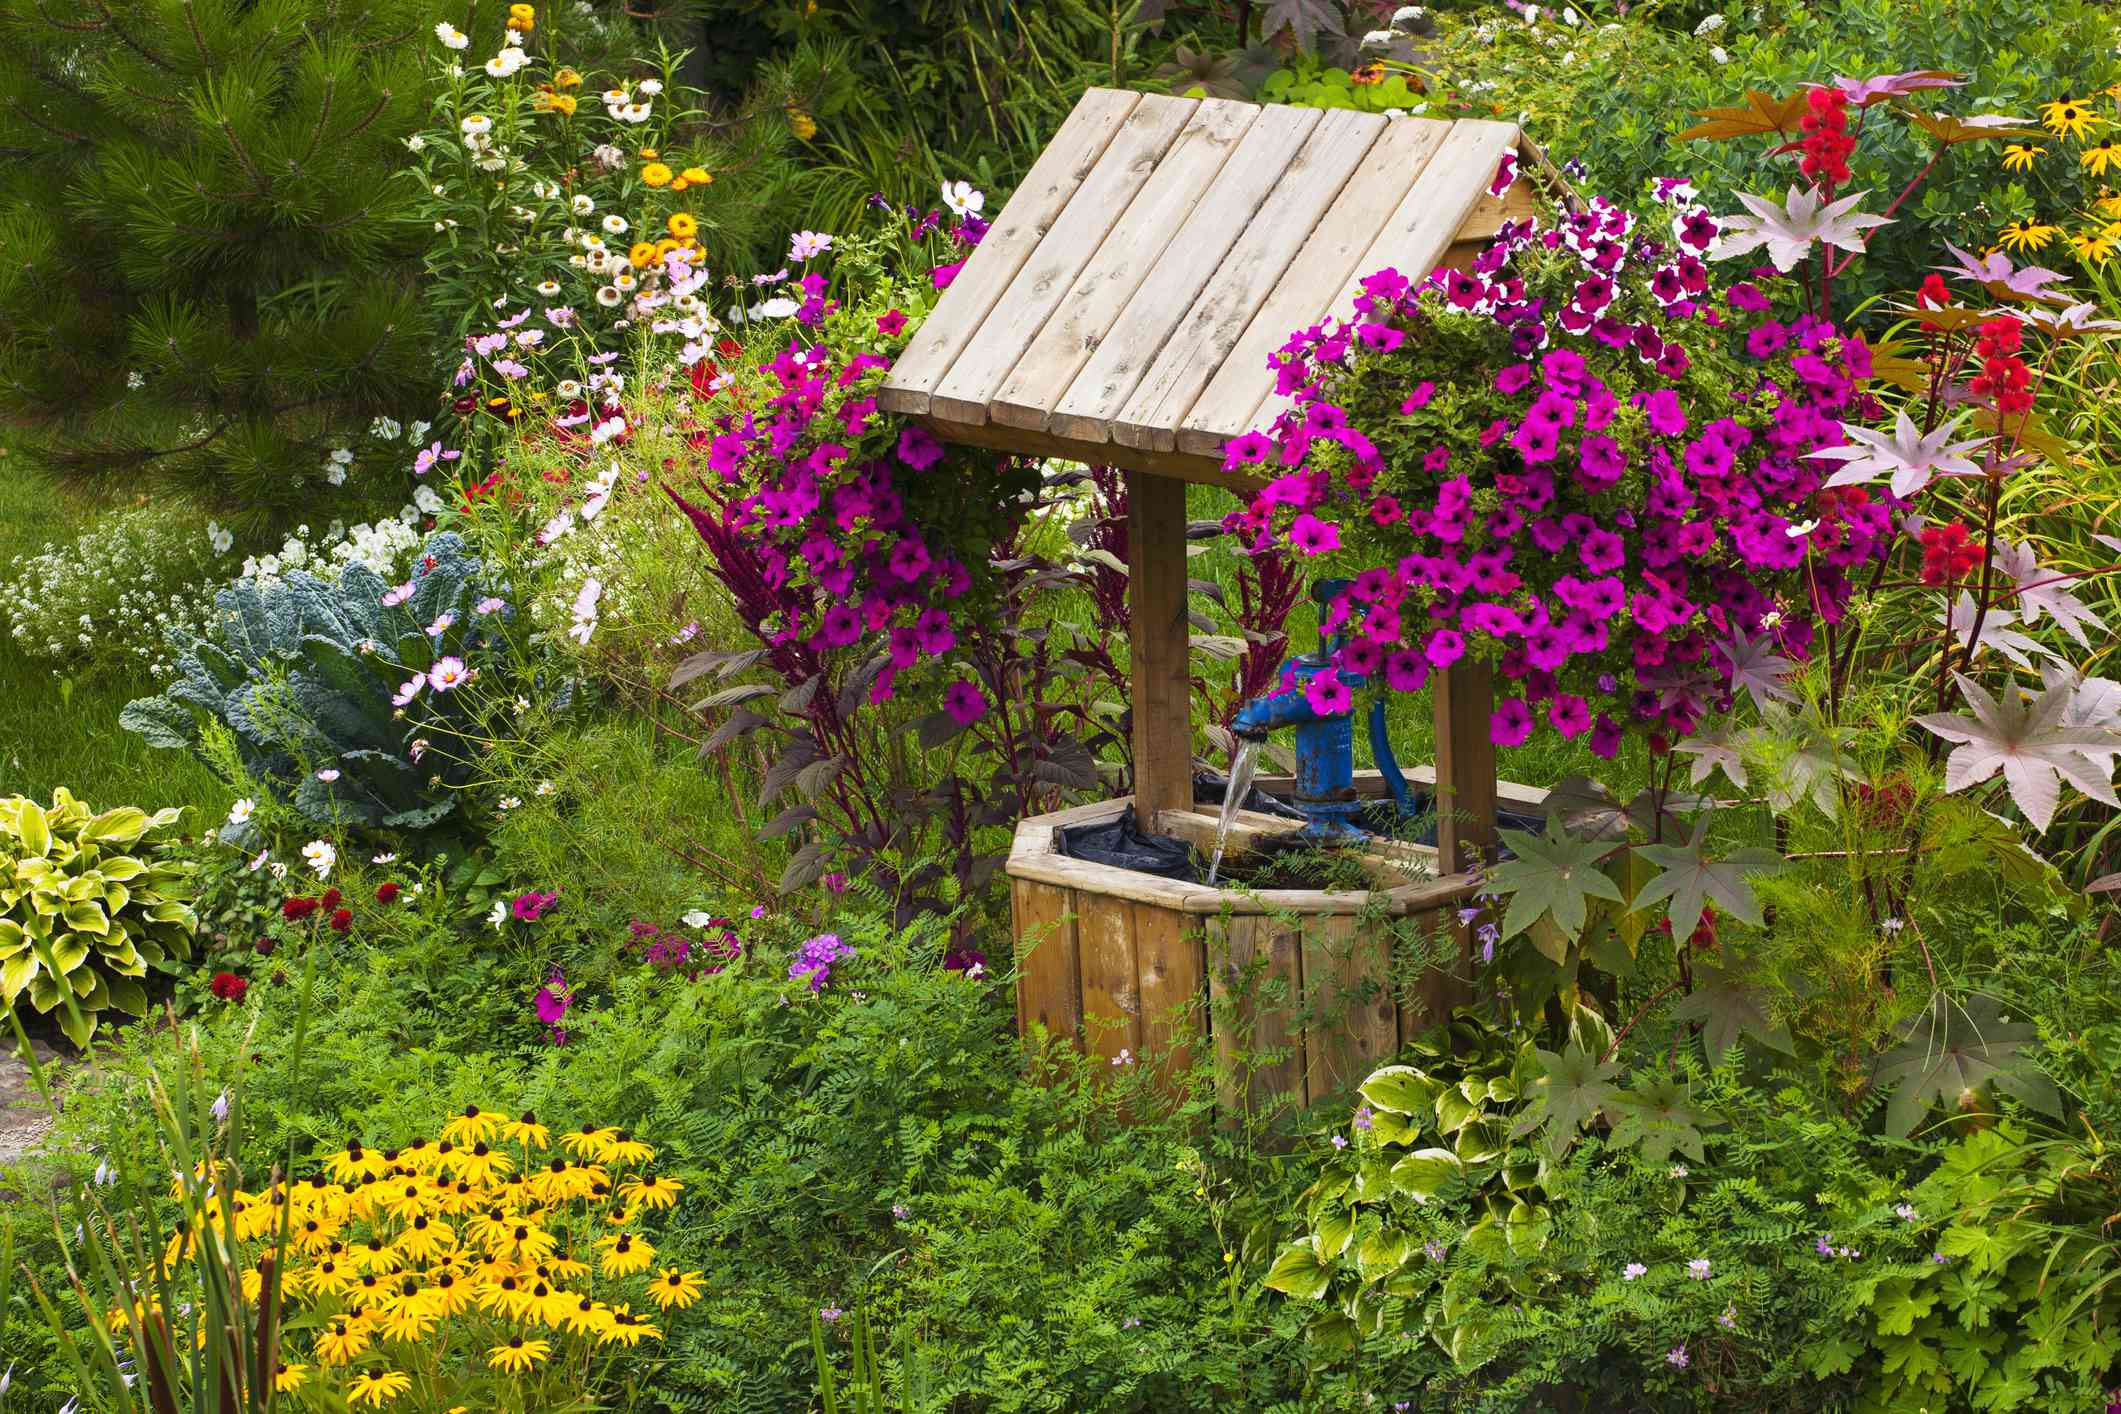 Flowers in a garden with a wishing well